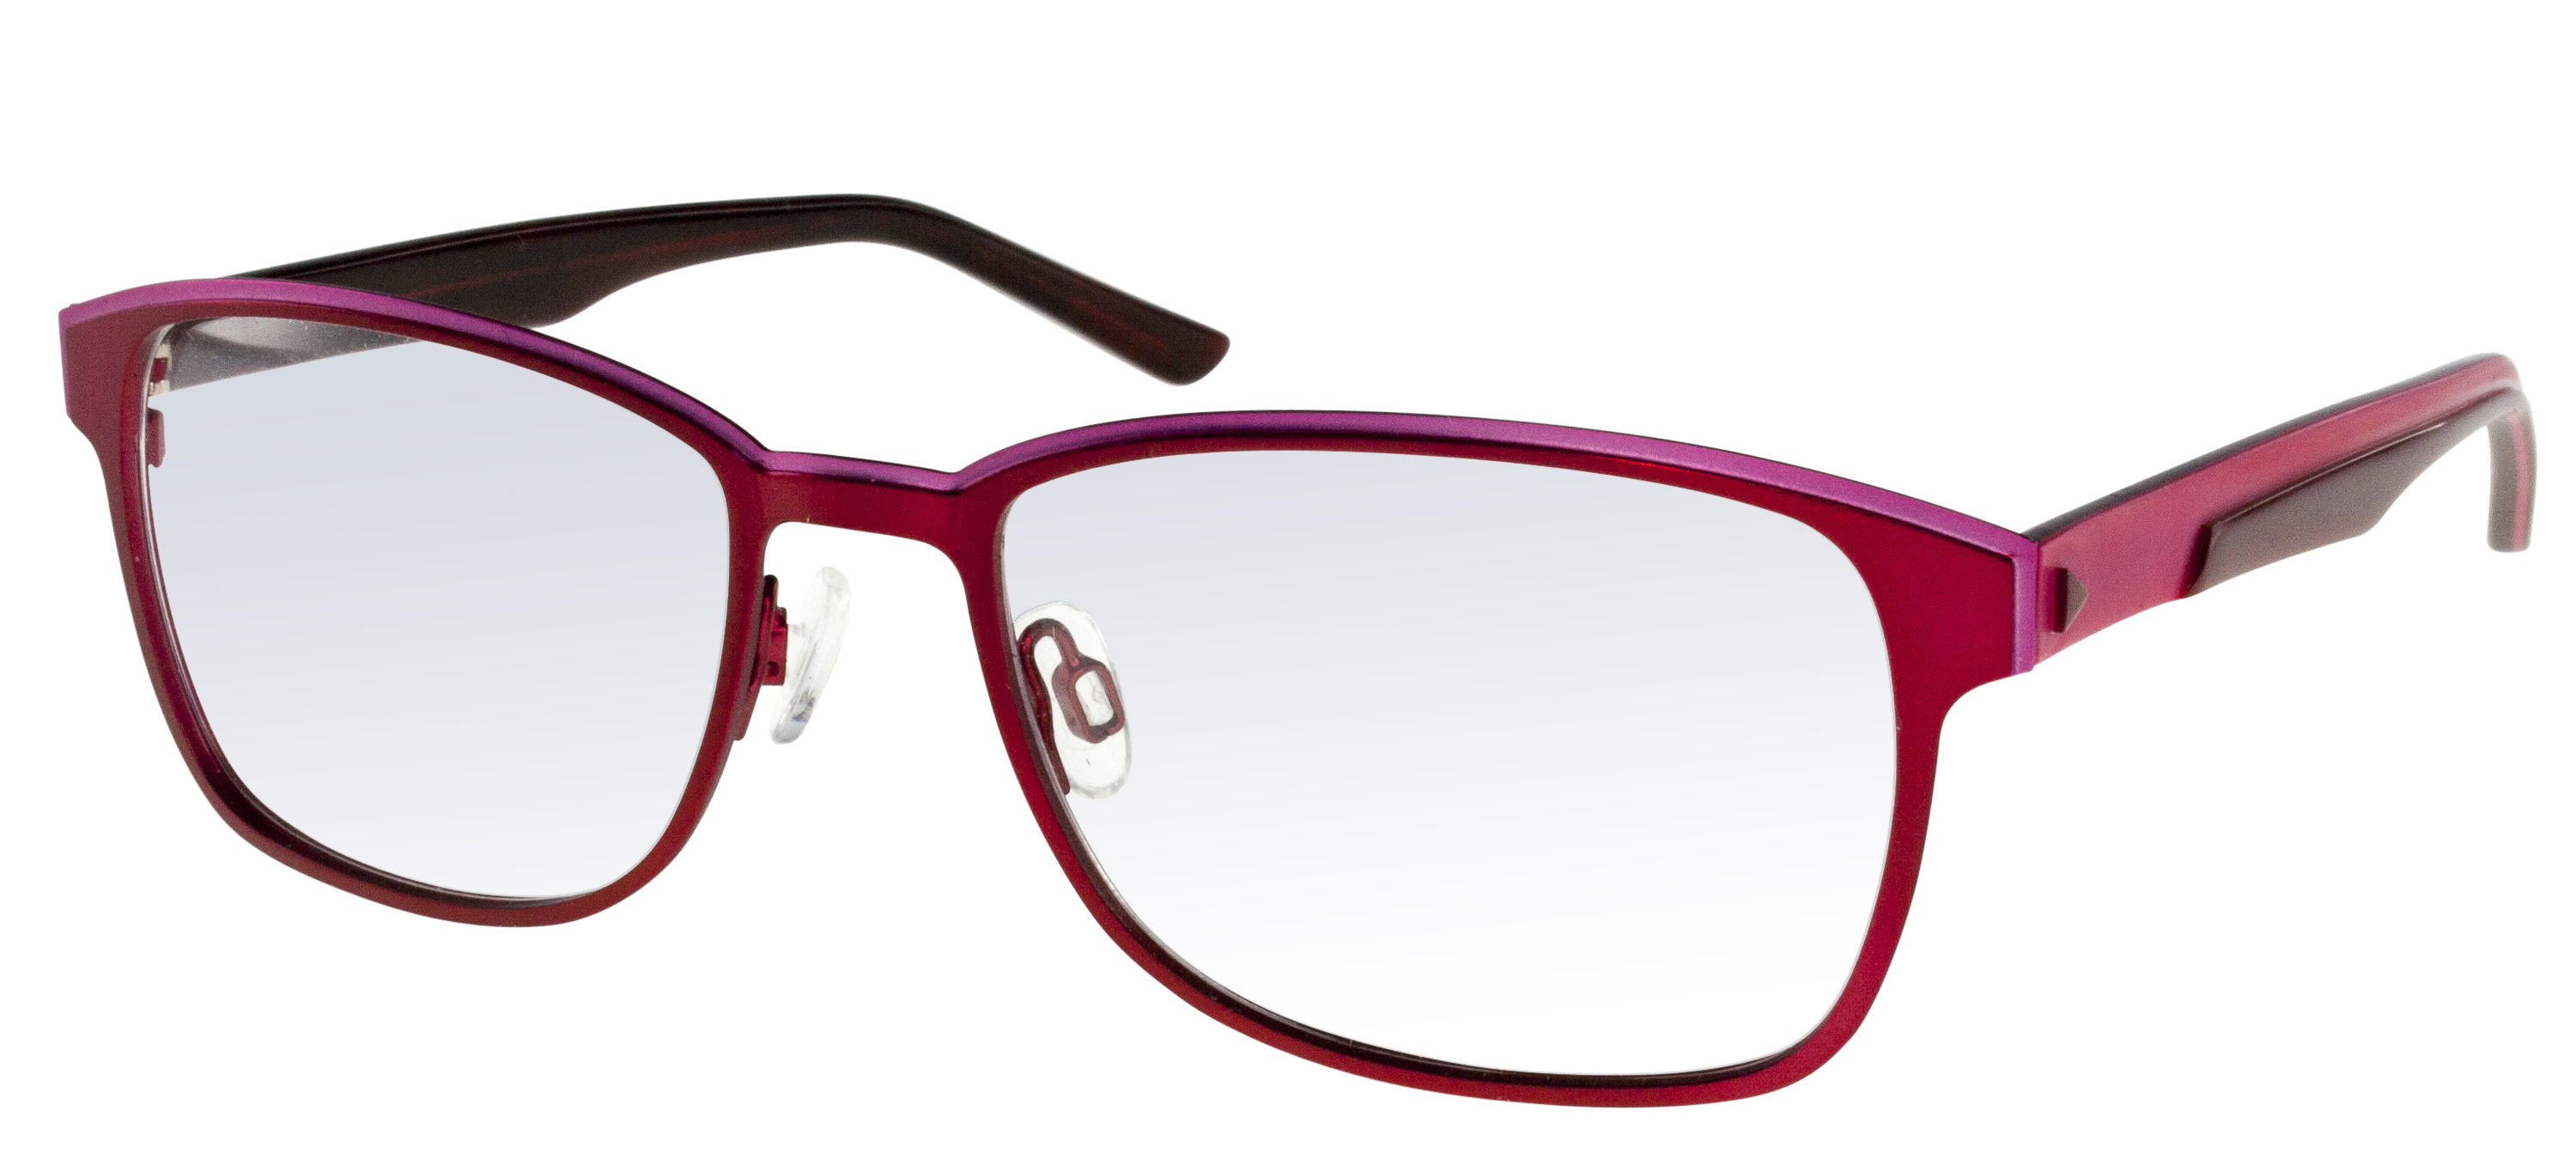 Eyewear. The Best. – Eyewear. The Best.